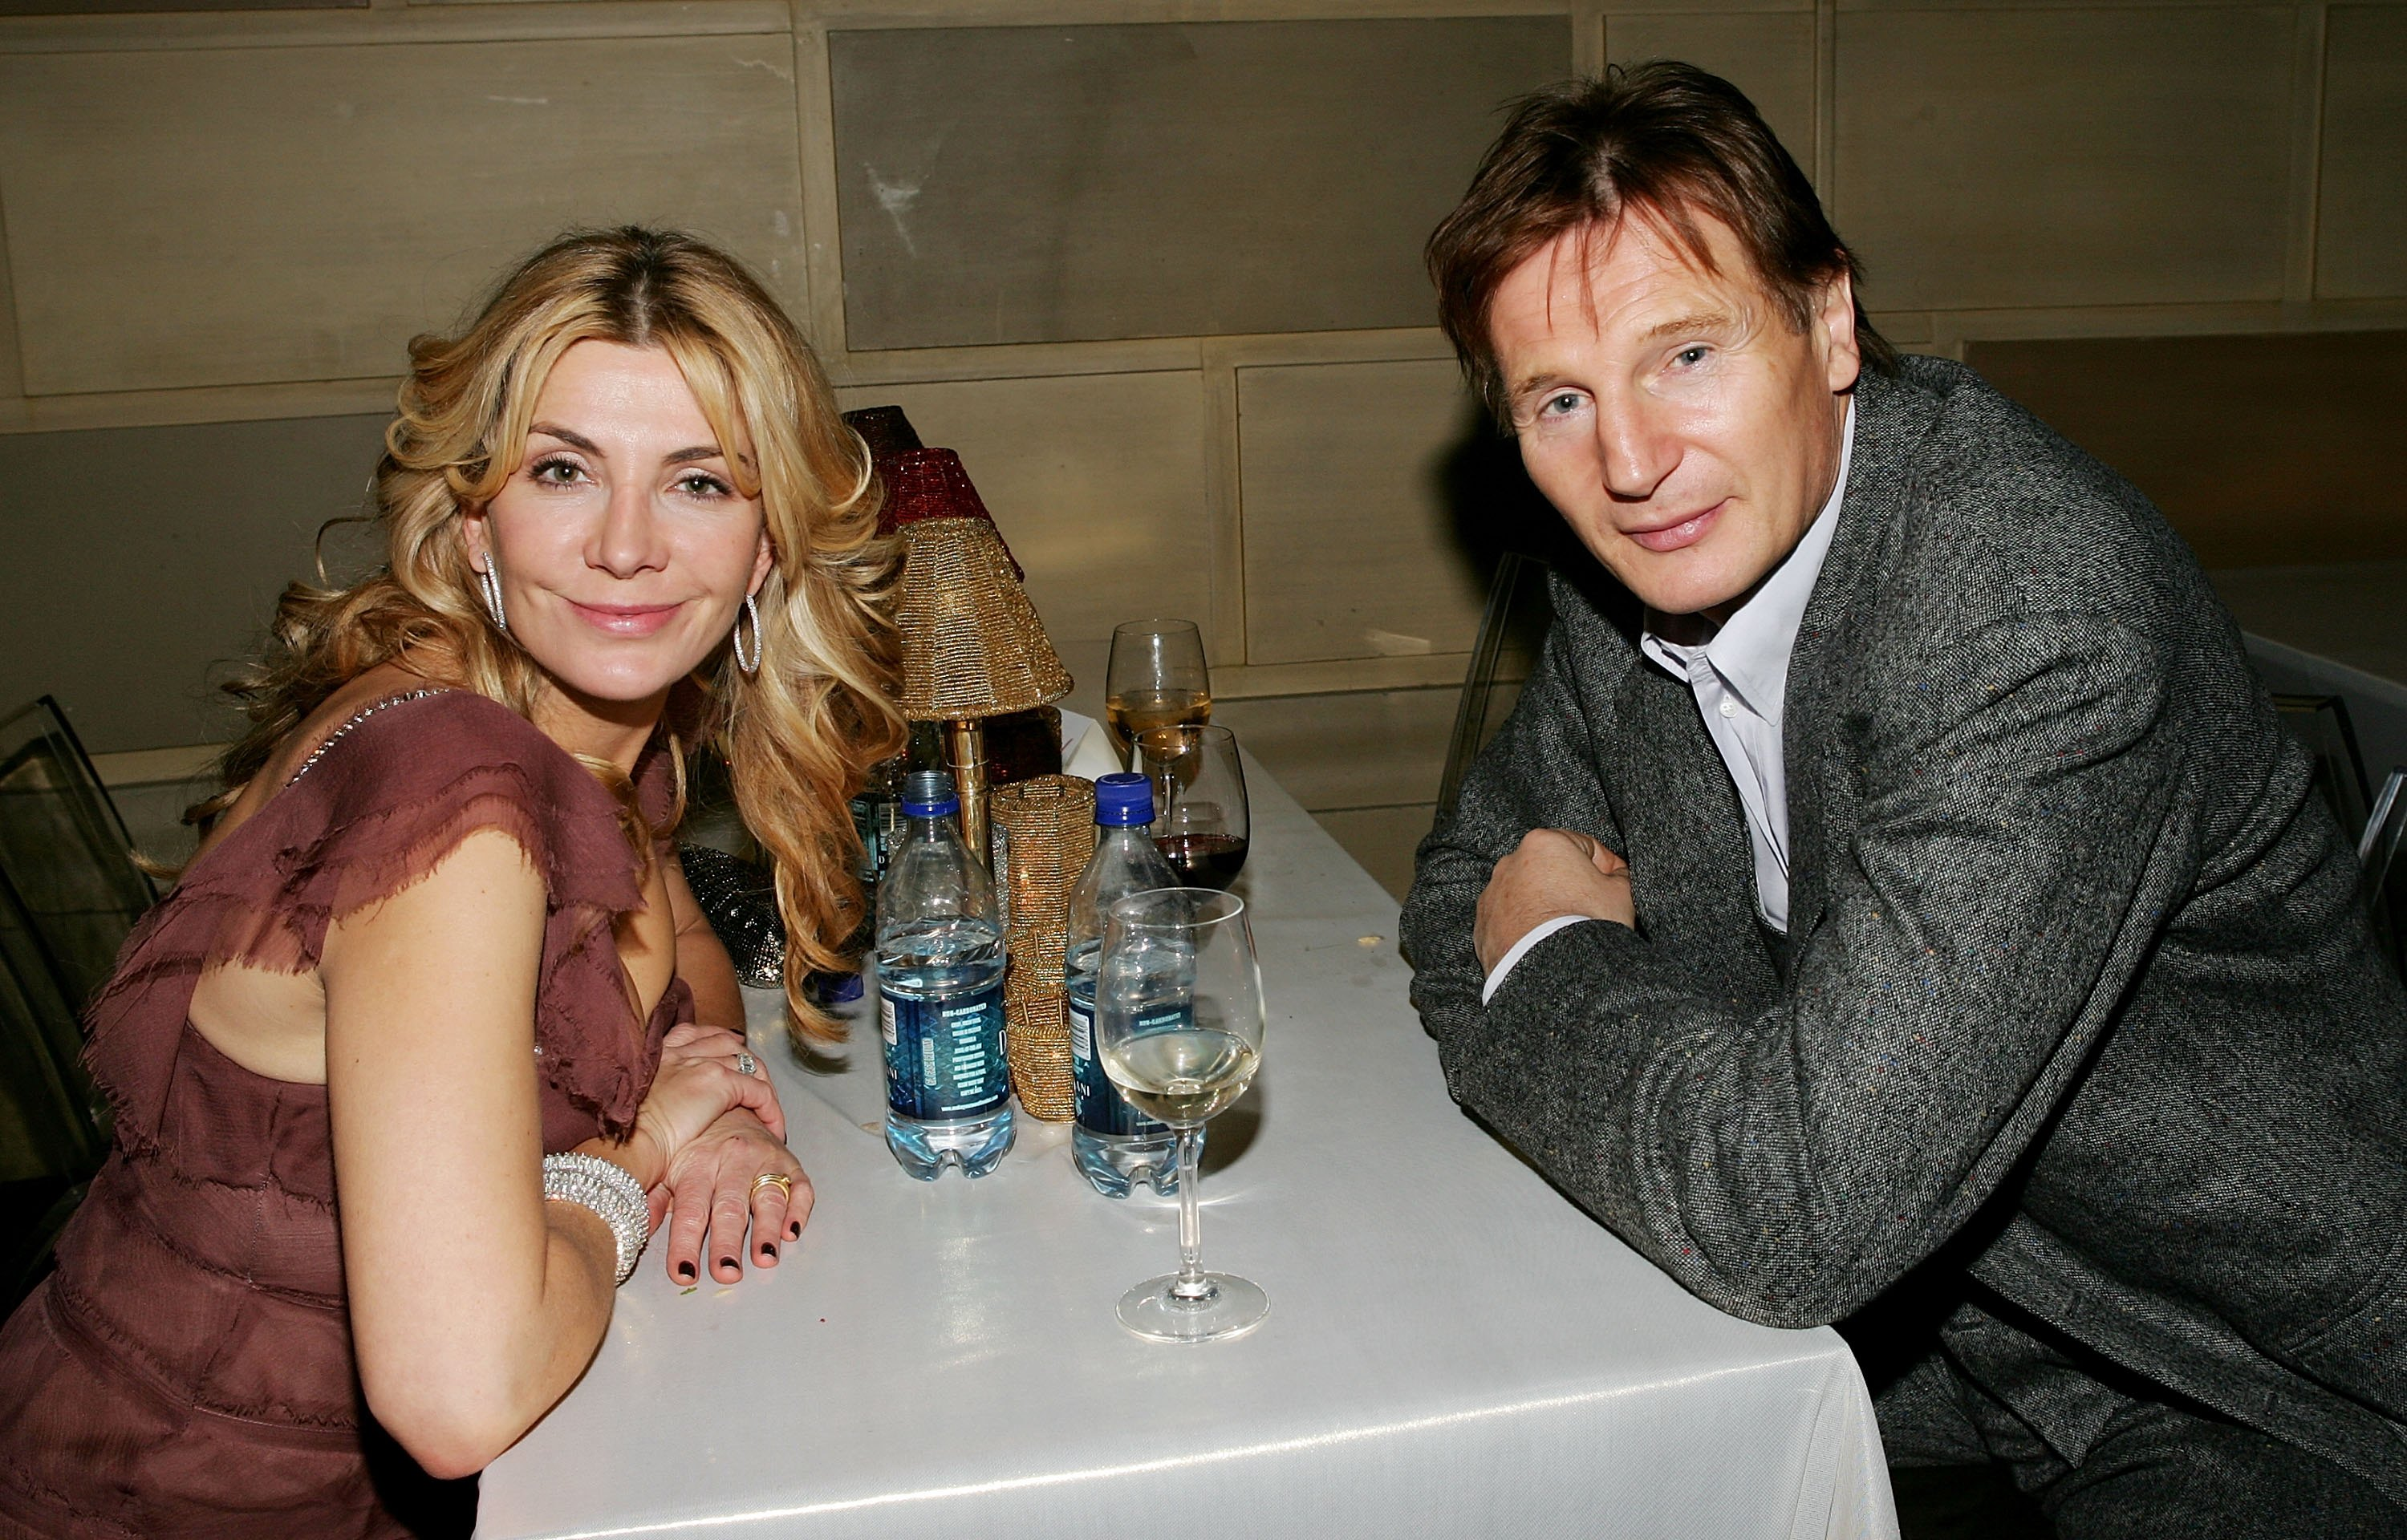 Actors Liam Neeson and wife Natasha Richardson attend the 'Dreamgirls' premiere after party at Gotham Hall December, 04 2006 in New York City.